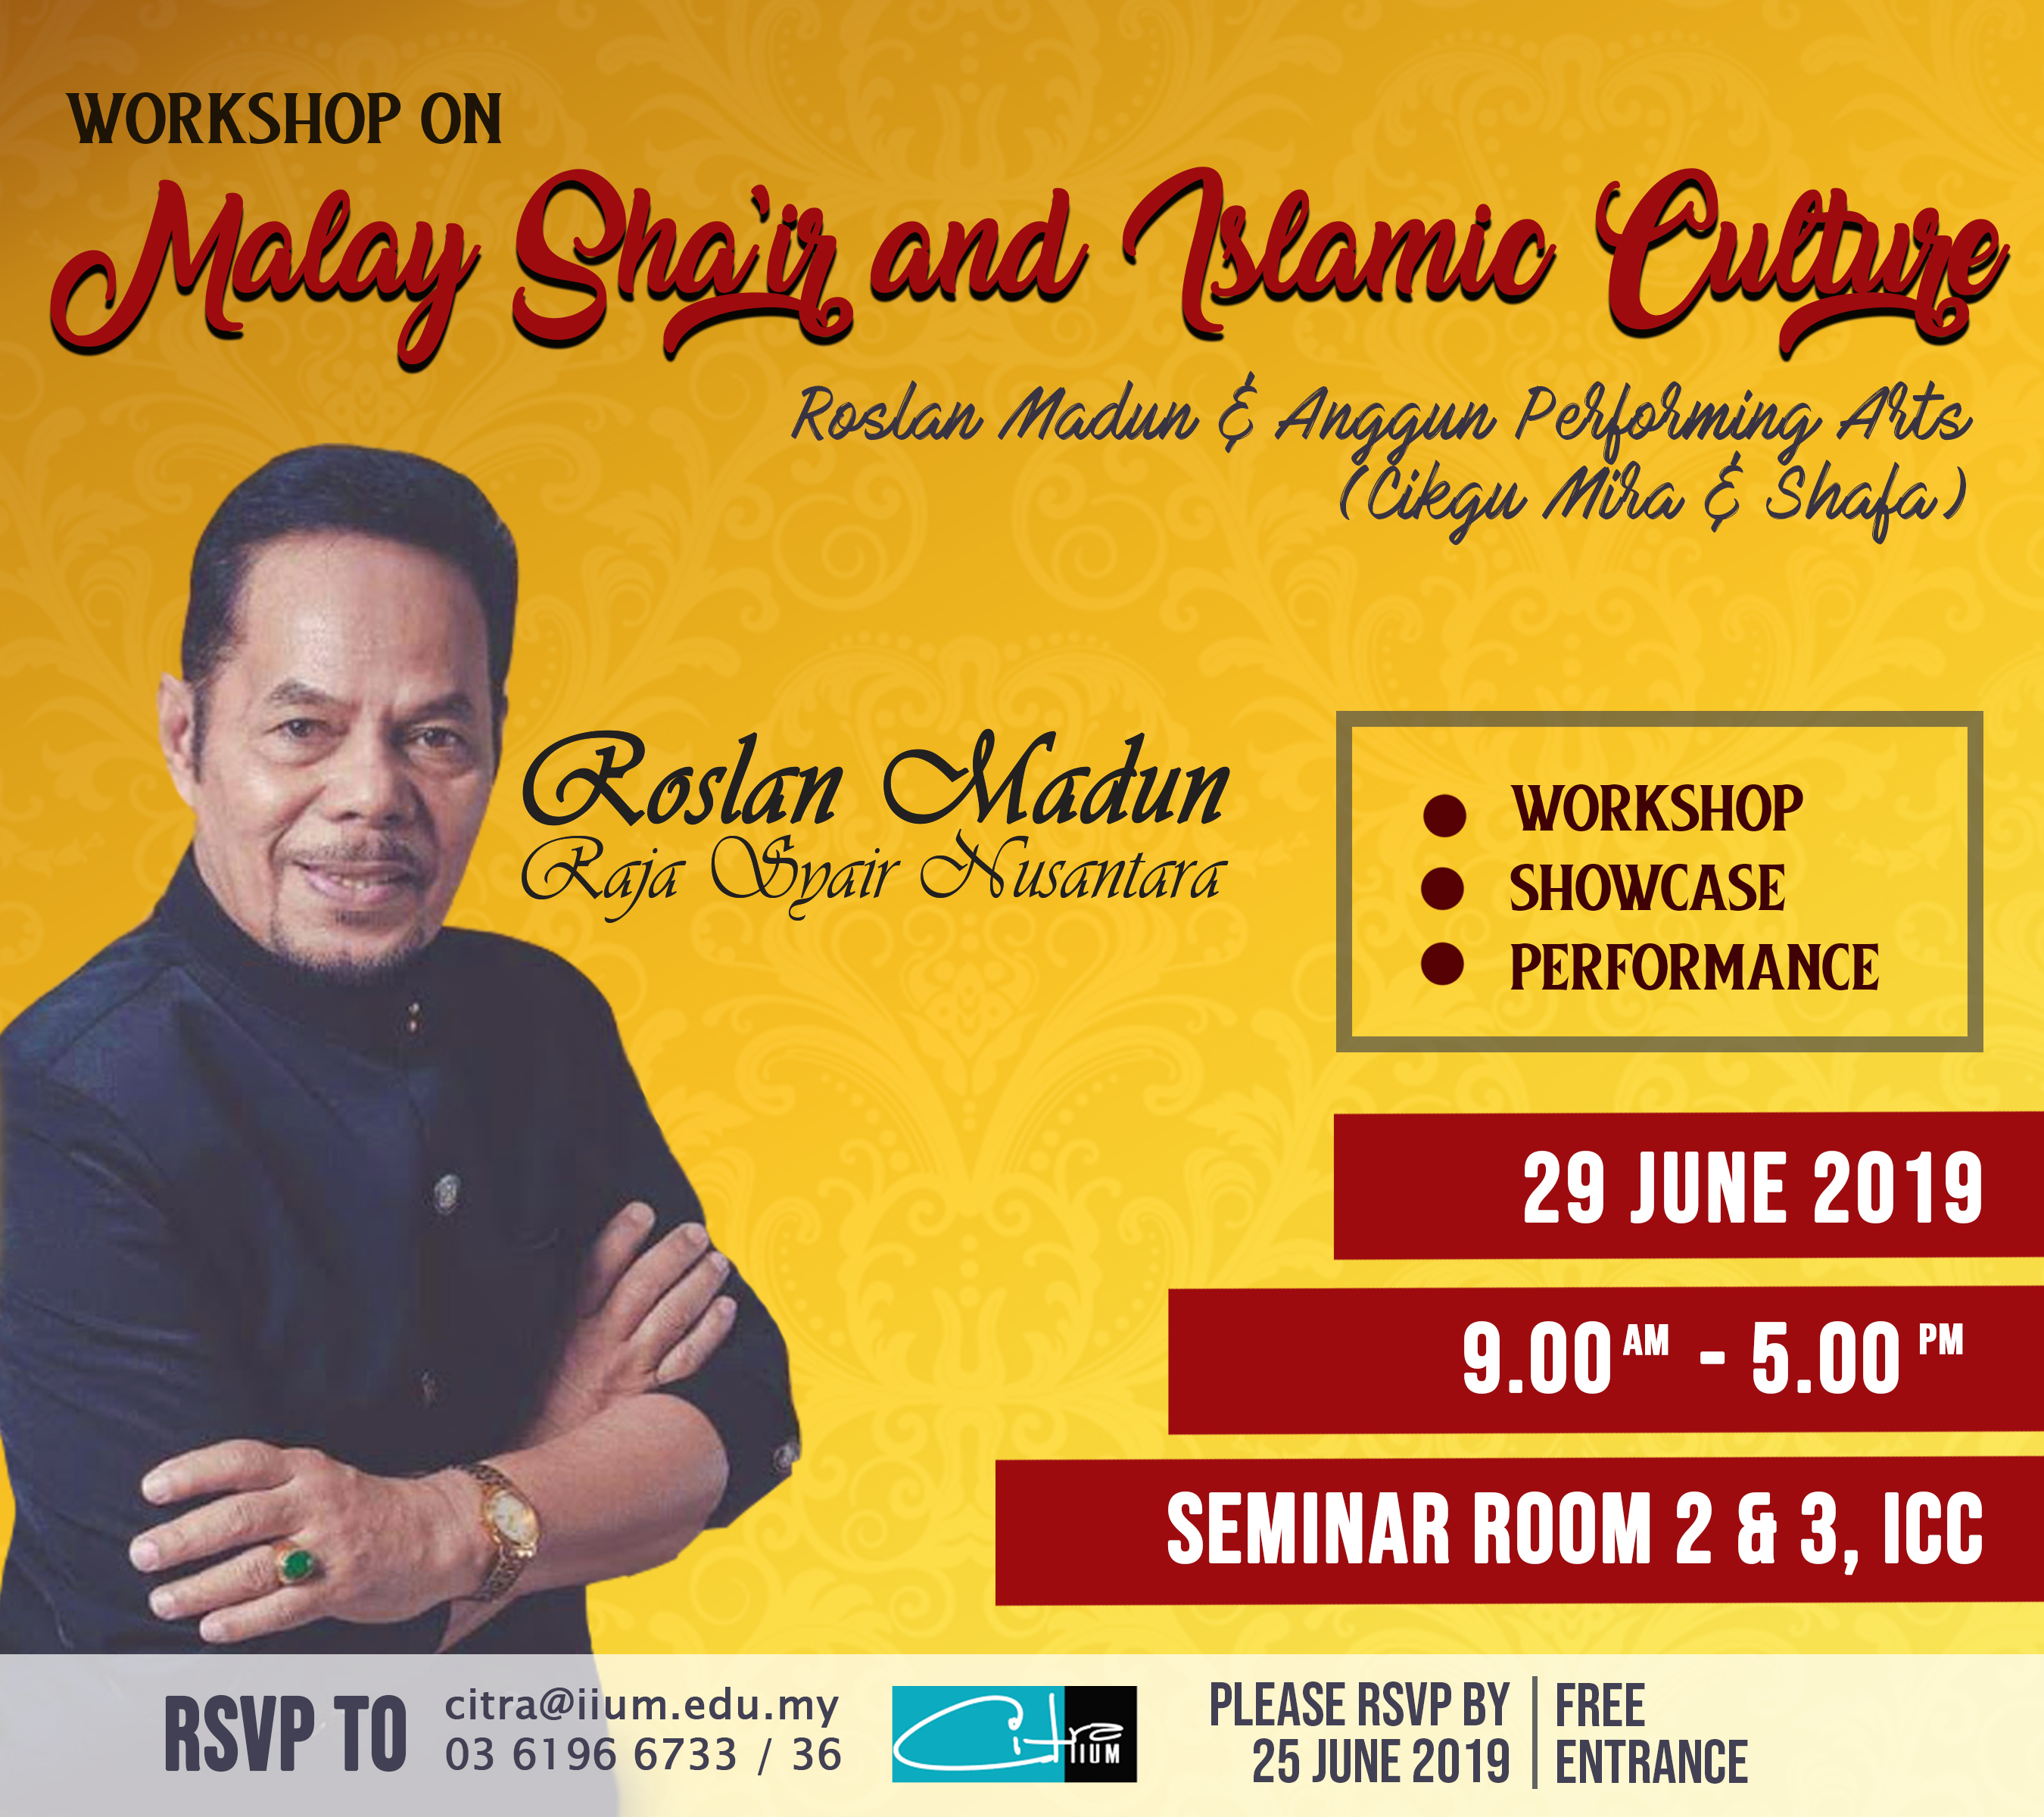 Workshop on Malay Sha'ir & Islamic Culture with Roslan Madun